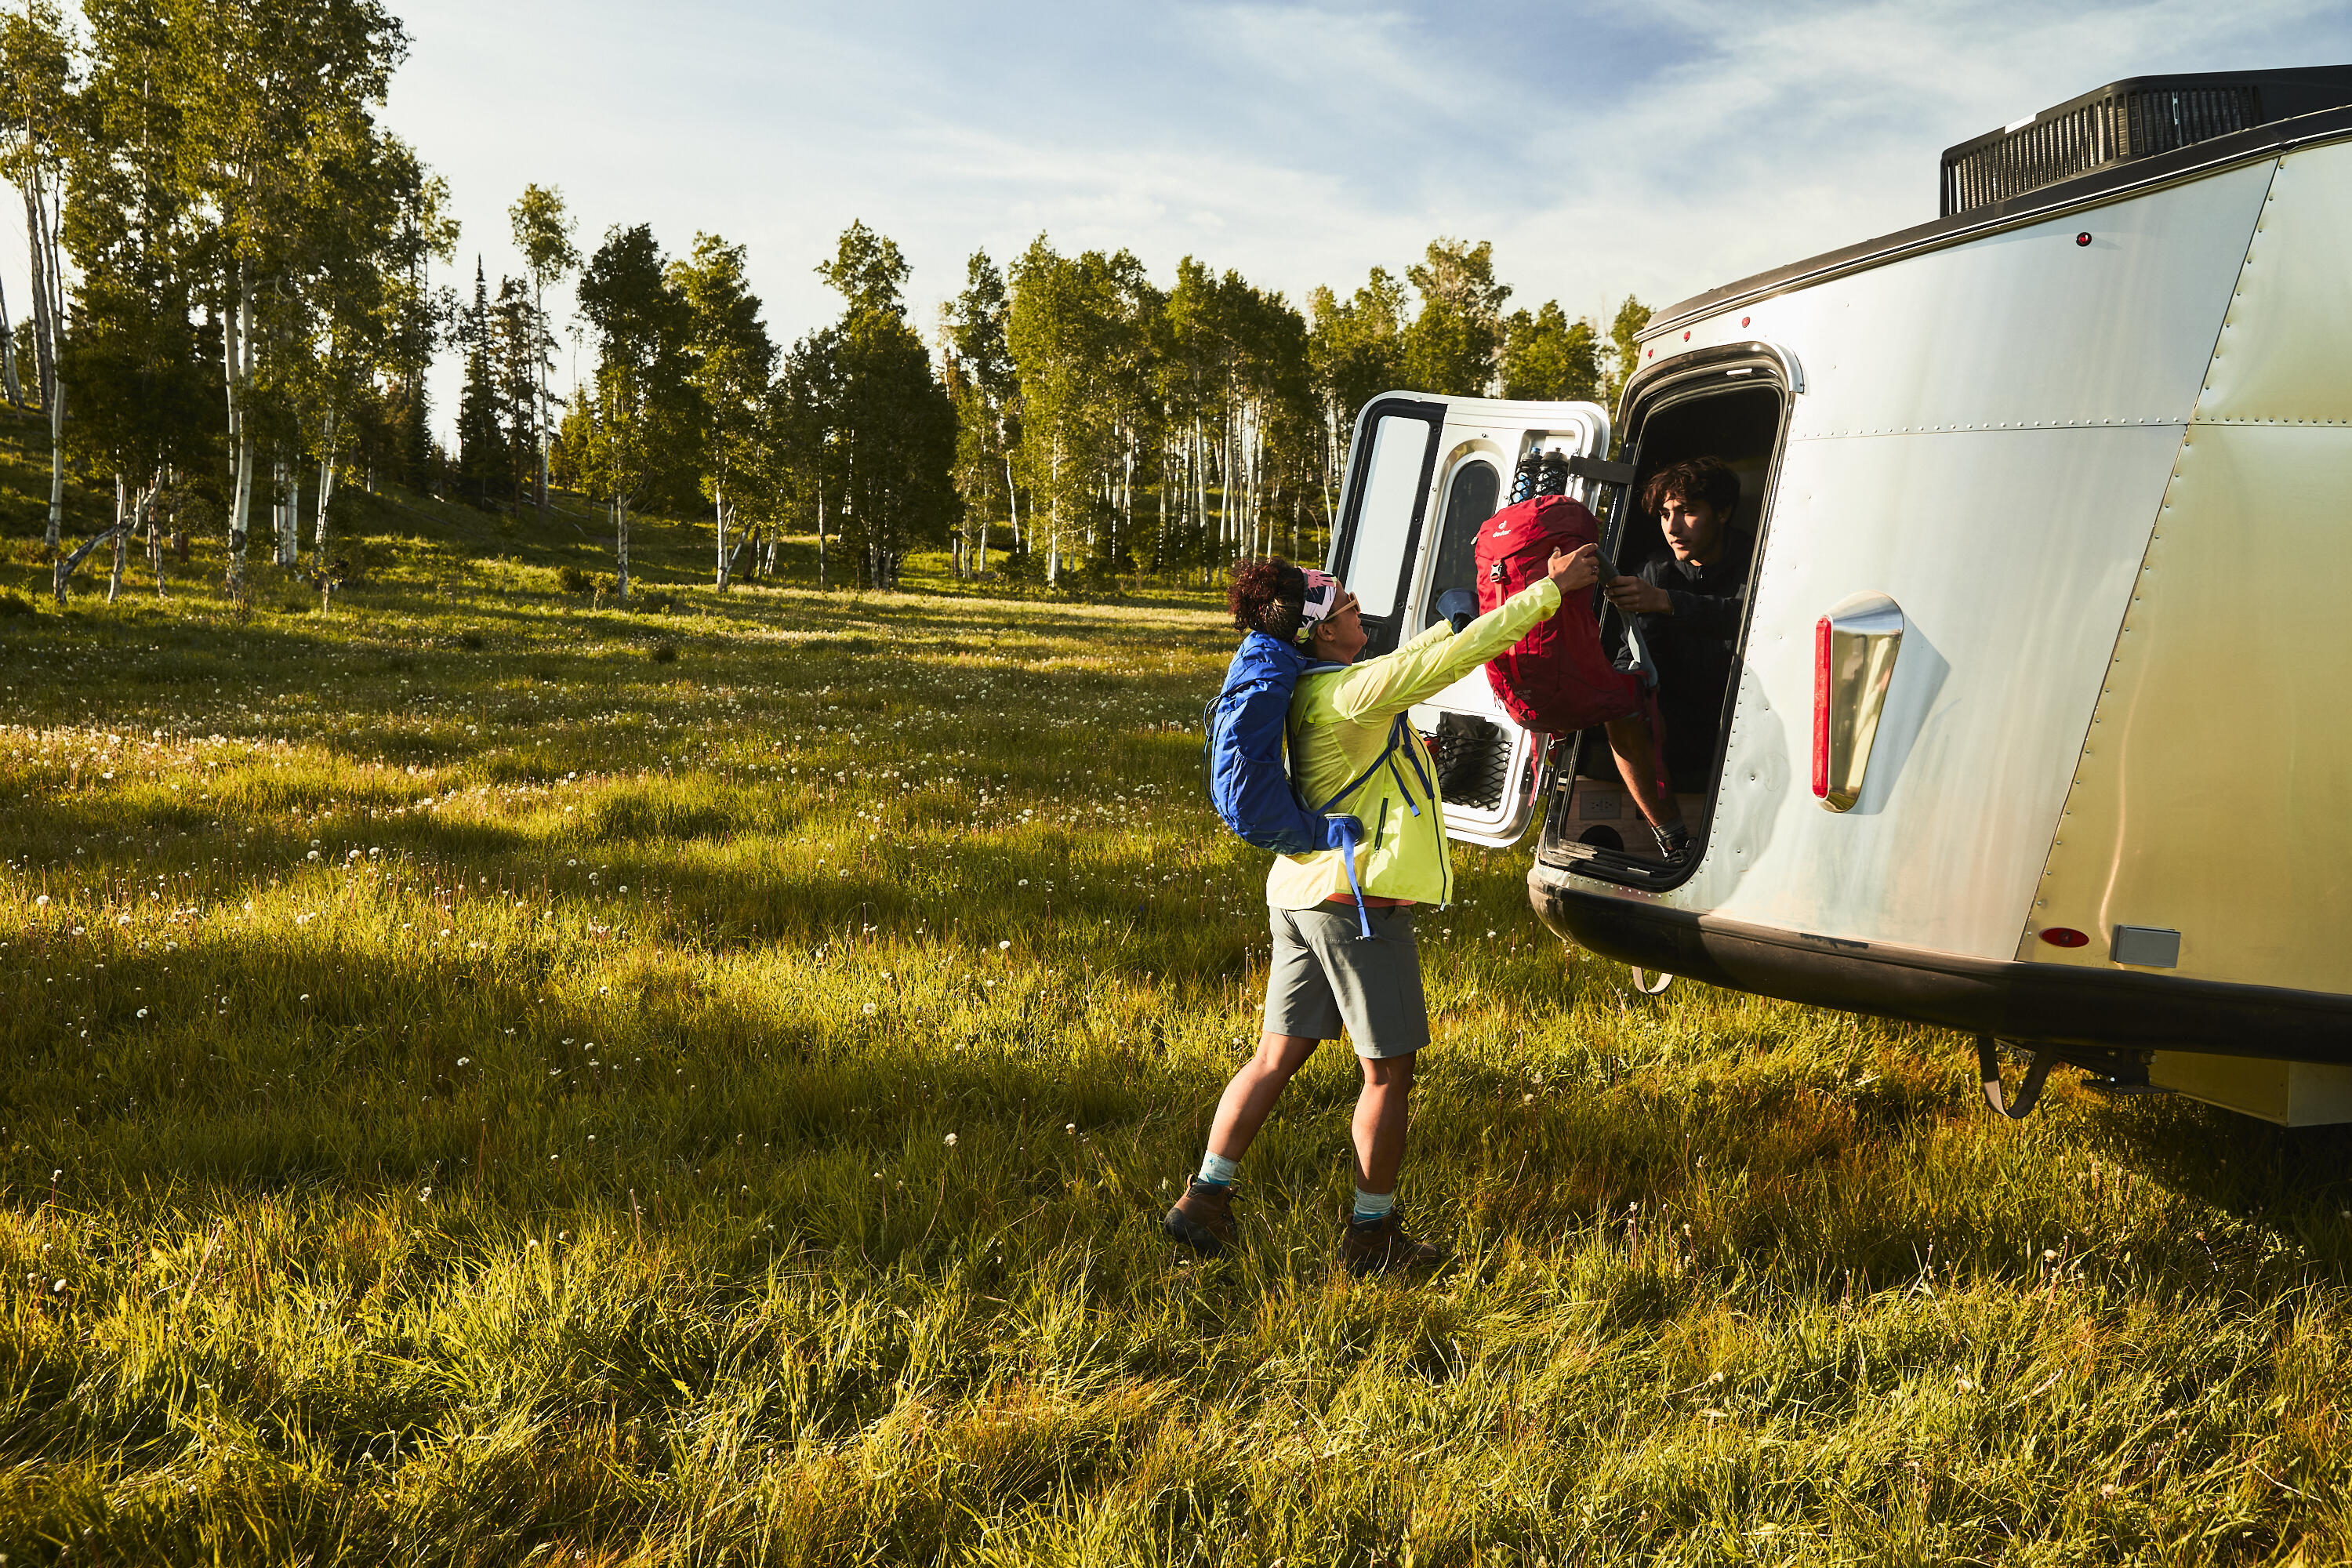 20-06-20-airstream-steamboat-dl-1366